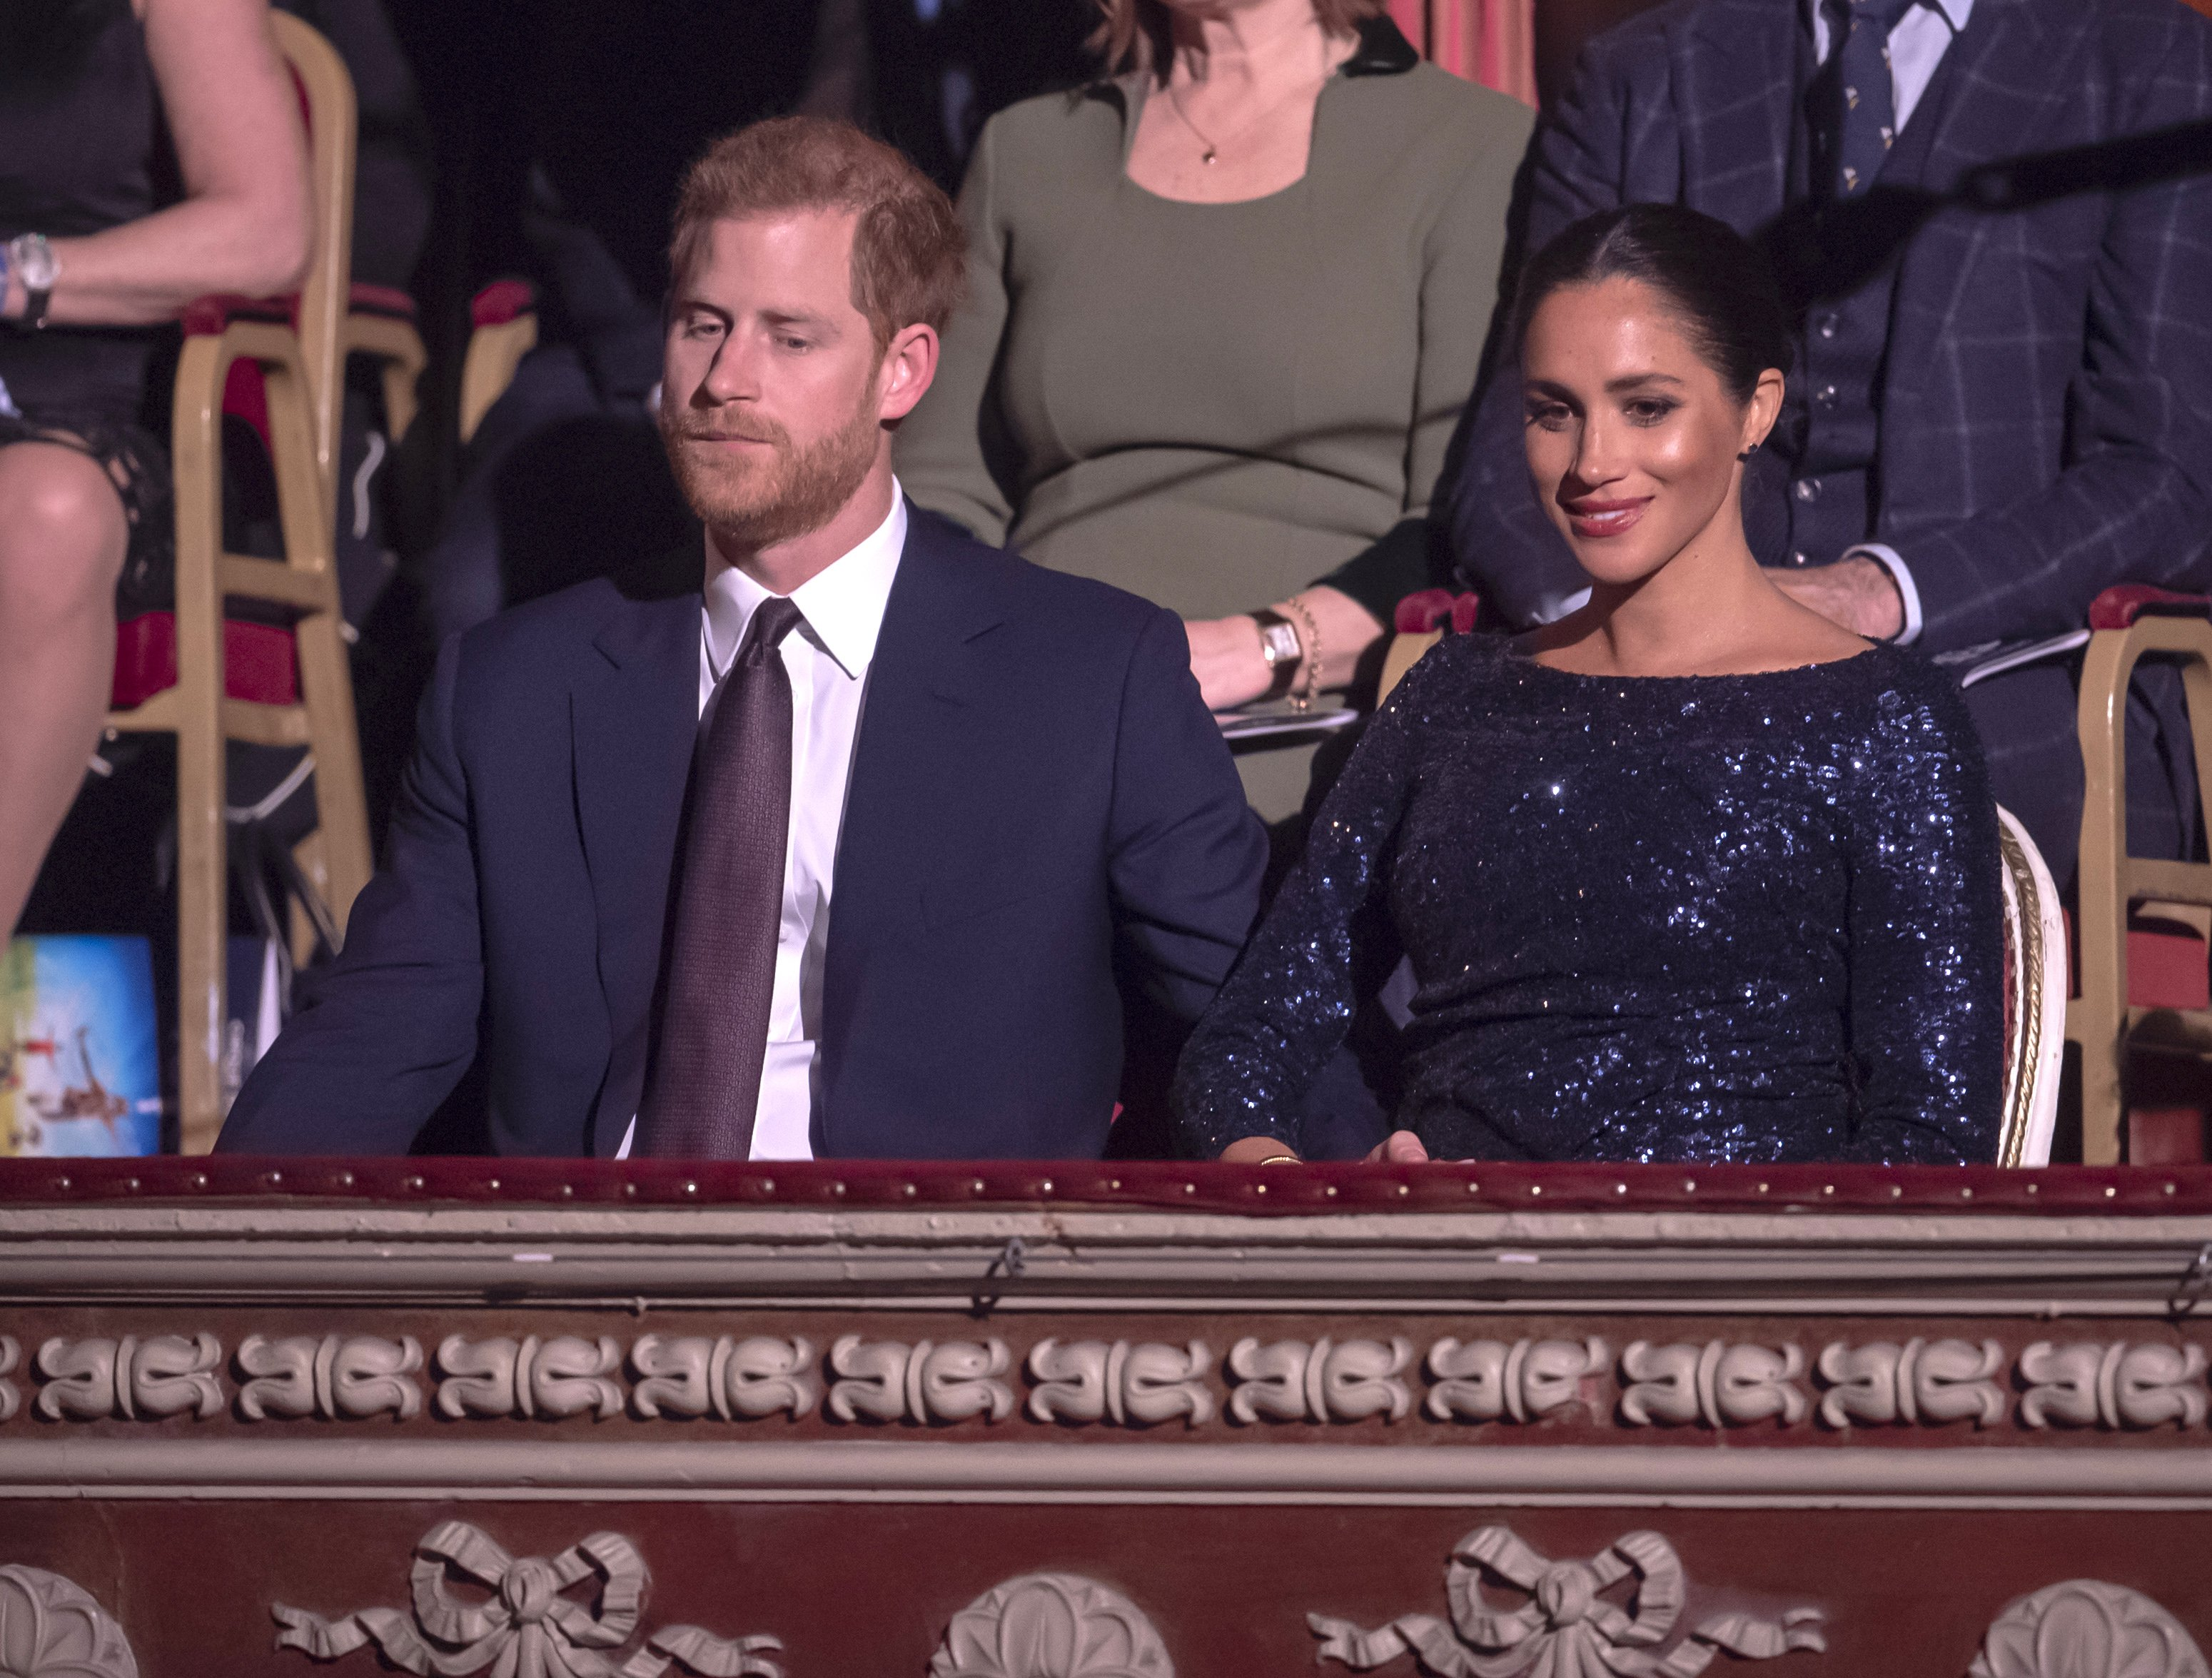 """Prince Harry and Meghan Markle attend the Cirque du Soleil Premiere Of """"TOTEM"""" at Royal Albert Hall on January 16, 2019 in London, England   Photo: Getty Images"""